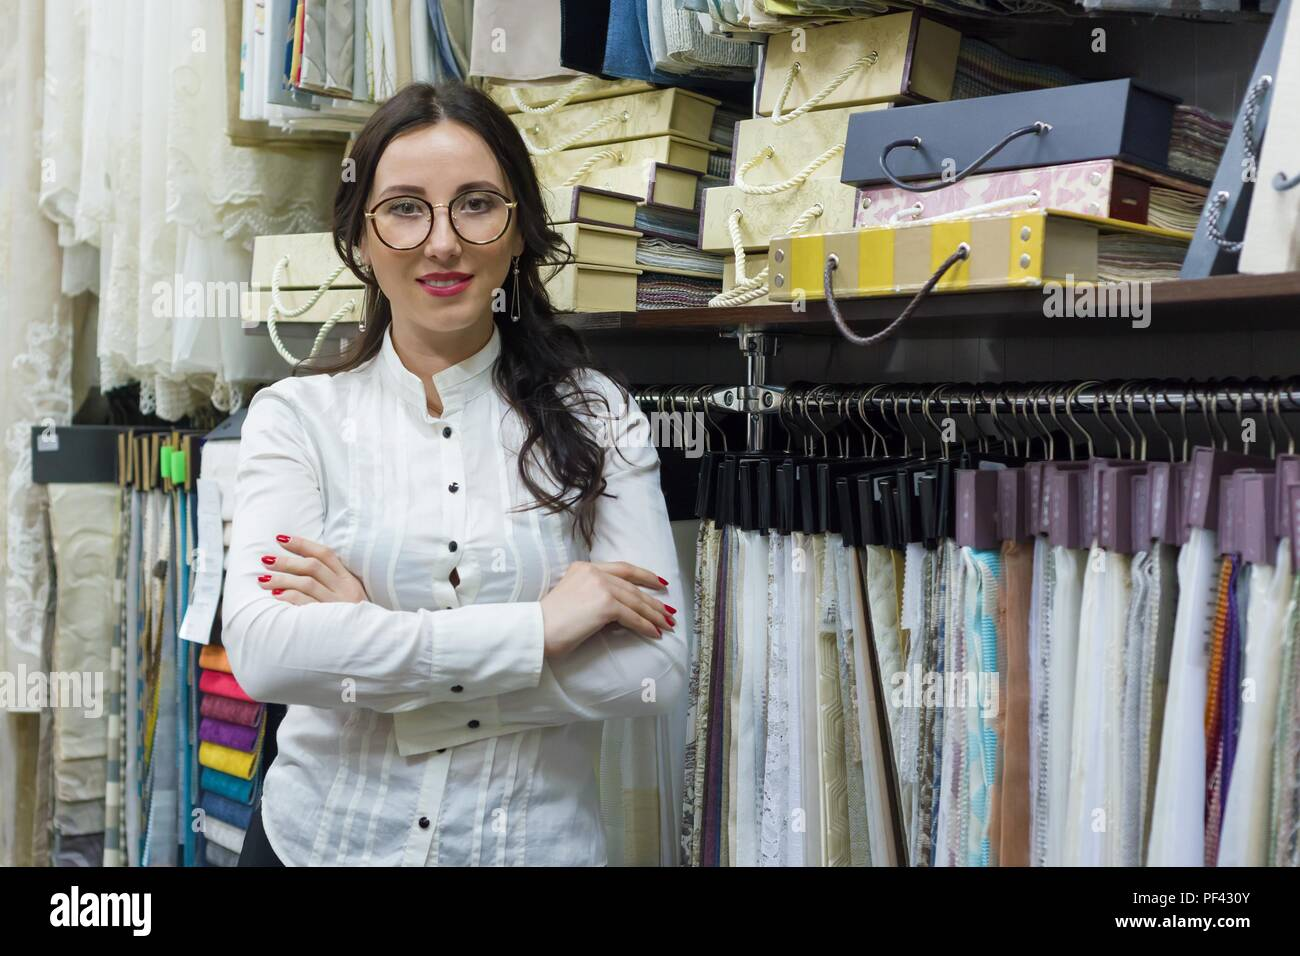 Portrait of happy woman owner with crossed arms in interior fabrics store, background fabric samples. Small business home textile shop - Stock Image